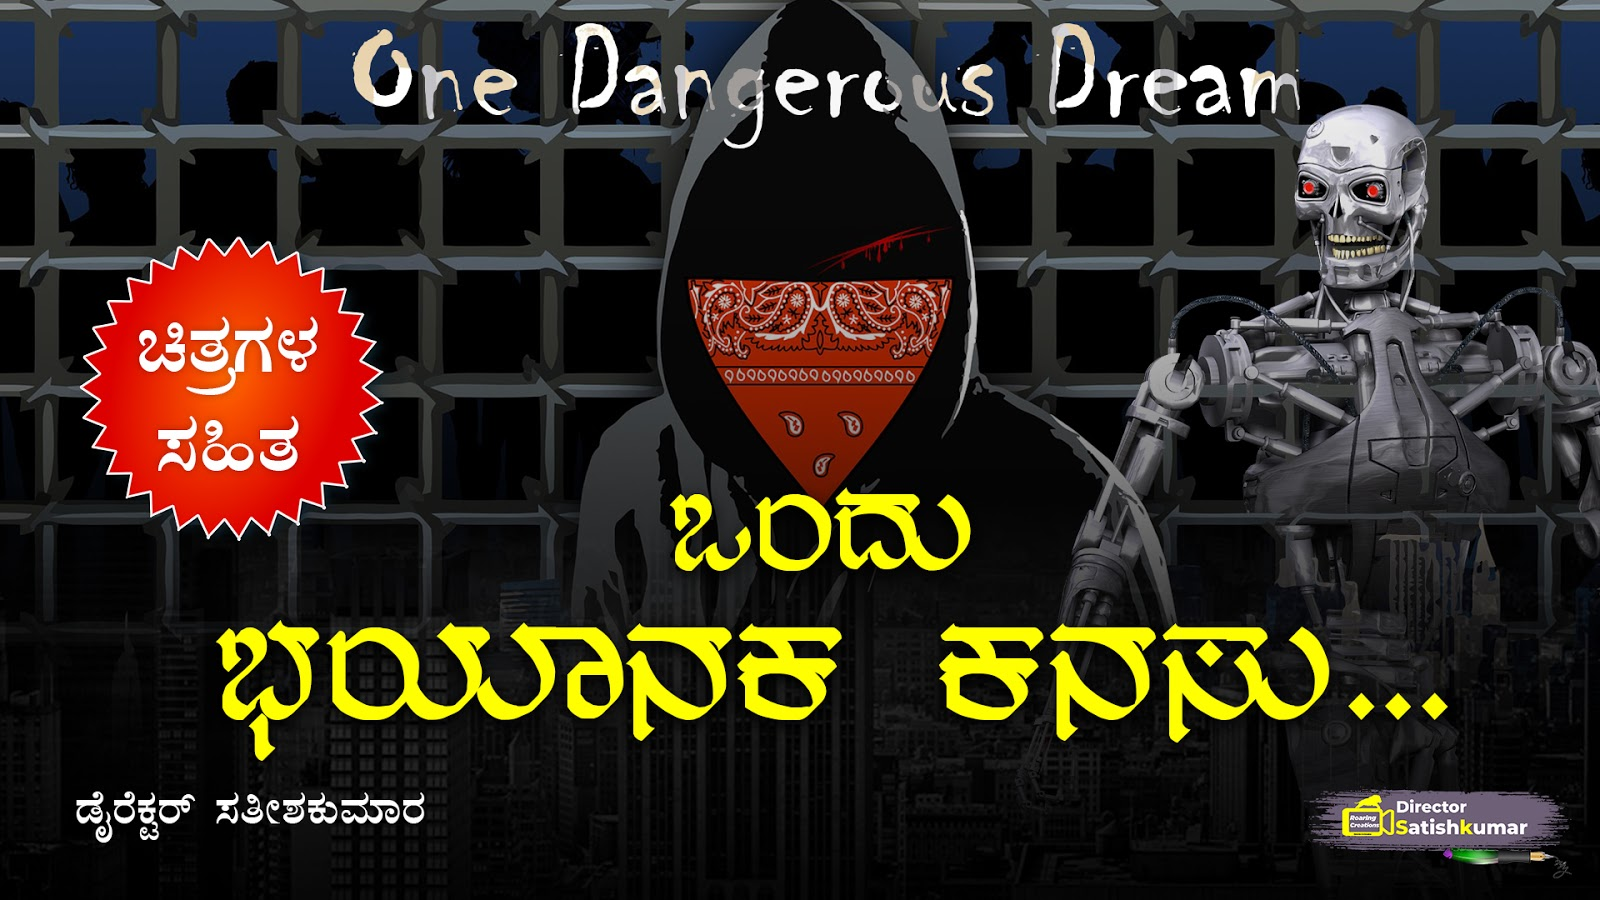 ಒಂದು ಭಯಾನಕ ಕನಸು... One Dangerous Dream   Kannada Social Message Story